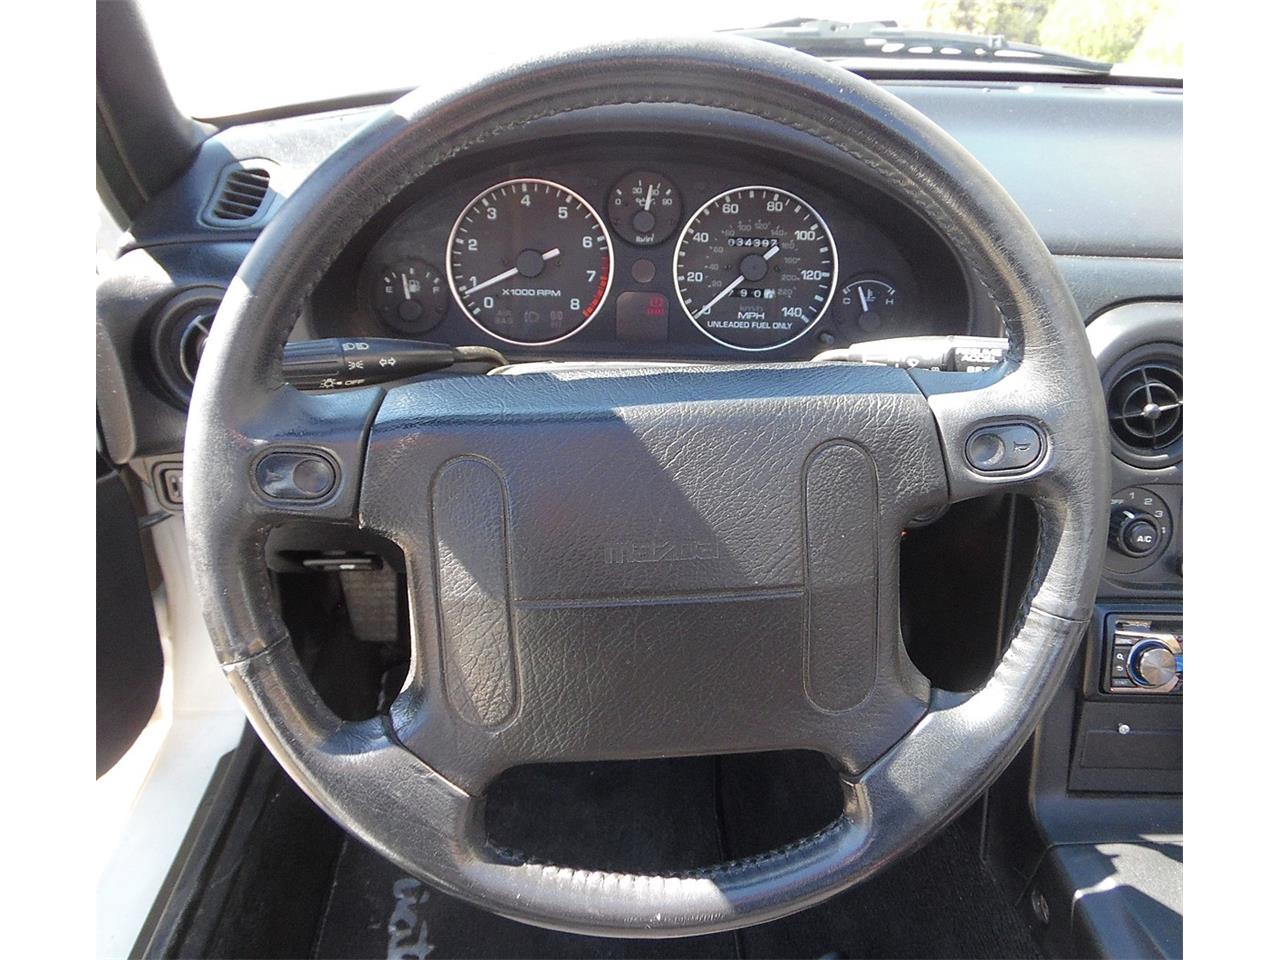 Large Picture of 1990 Mazda Miata located in California - $9,995.00 Offered by Play Toys Classic Cars - PVWW